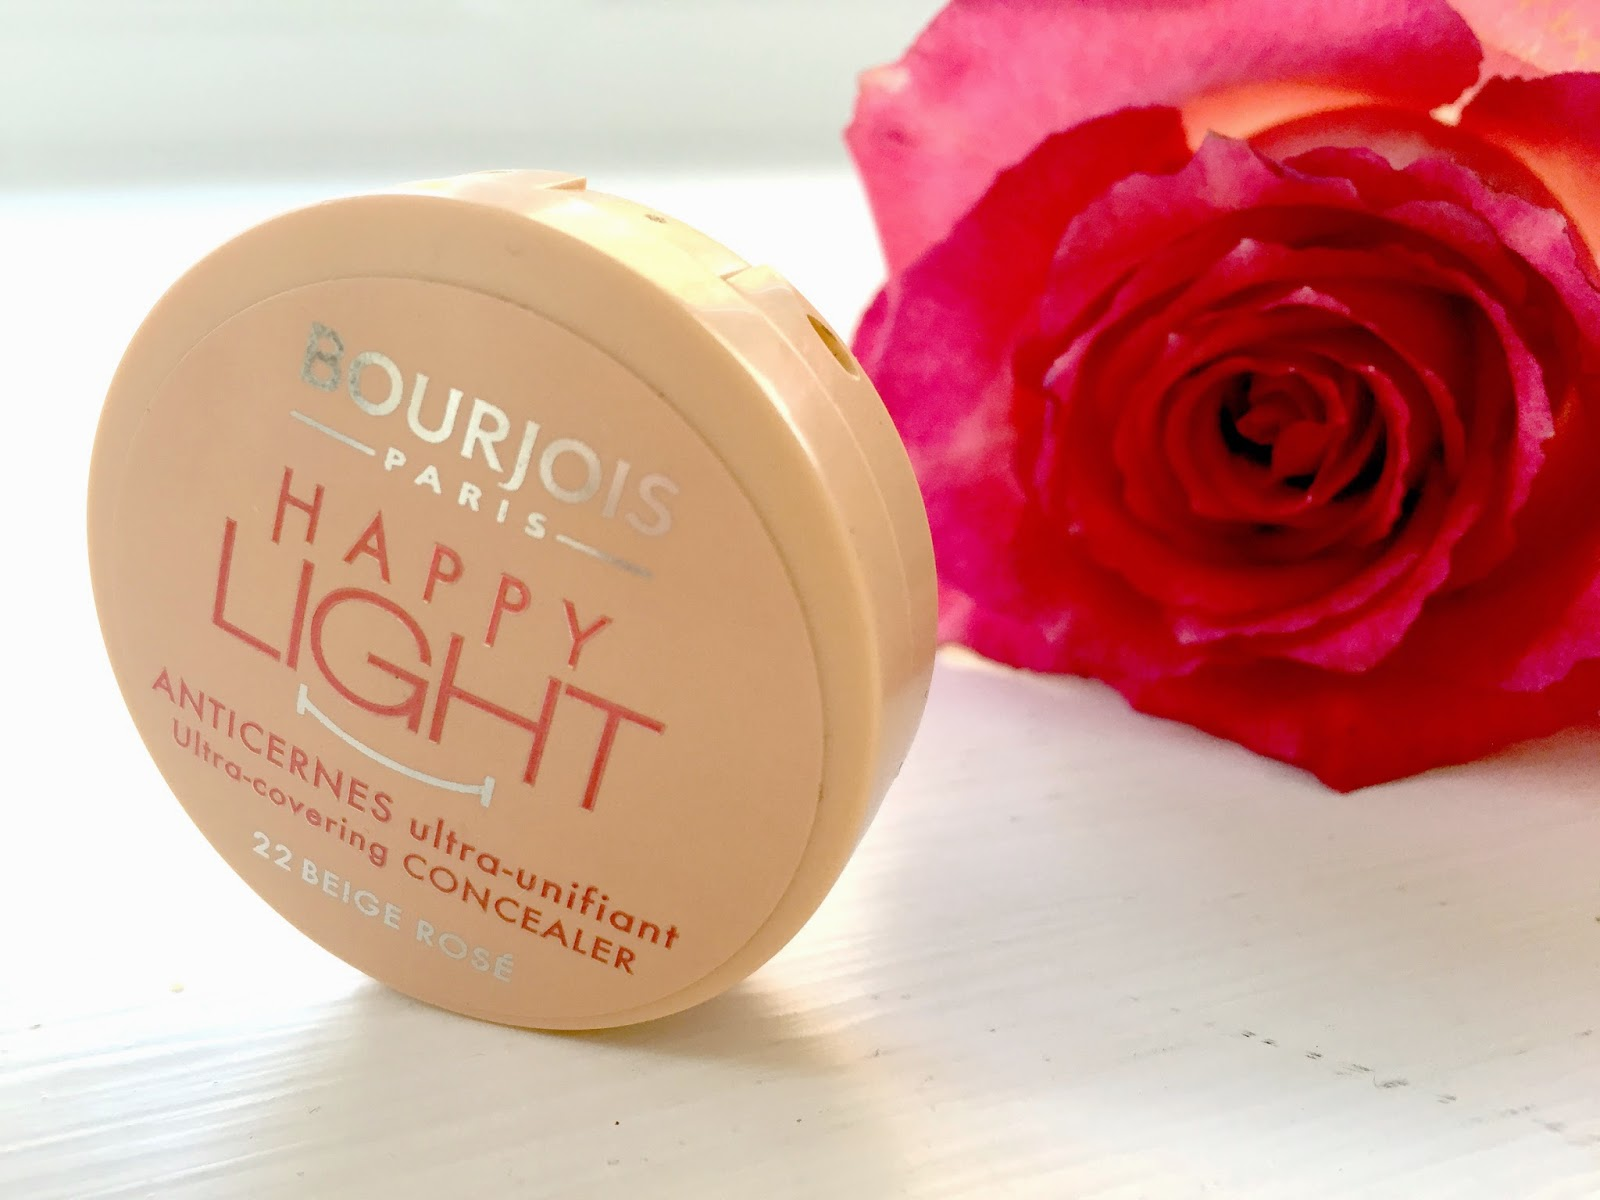 Bourjois Paris Happy Light Ultra-Covering Concealer Review and Swatches